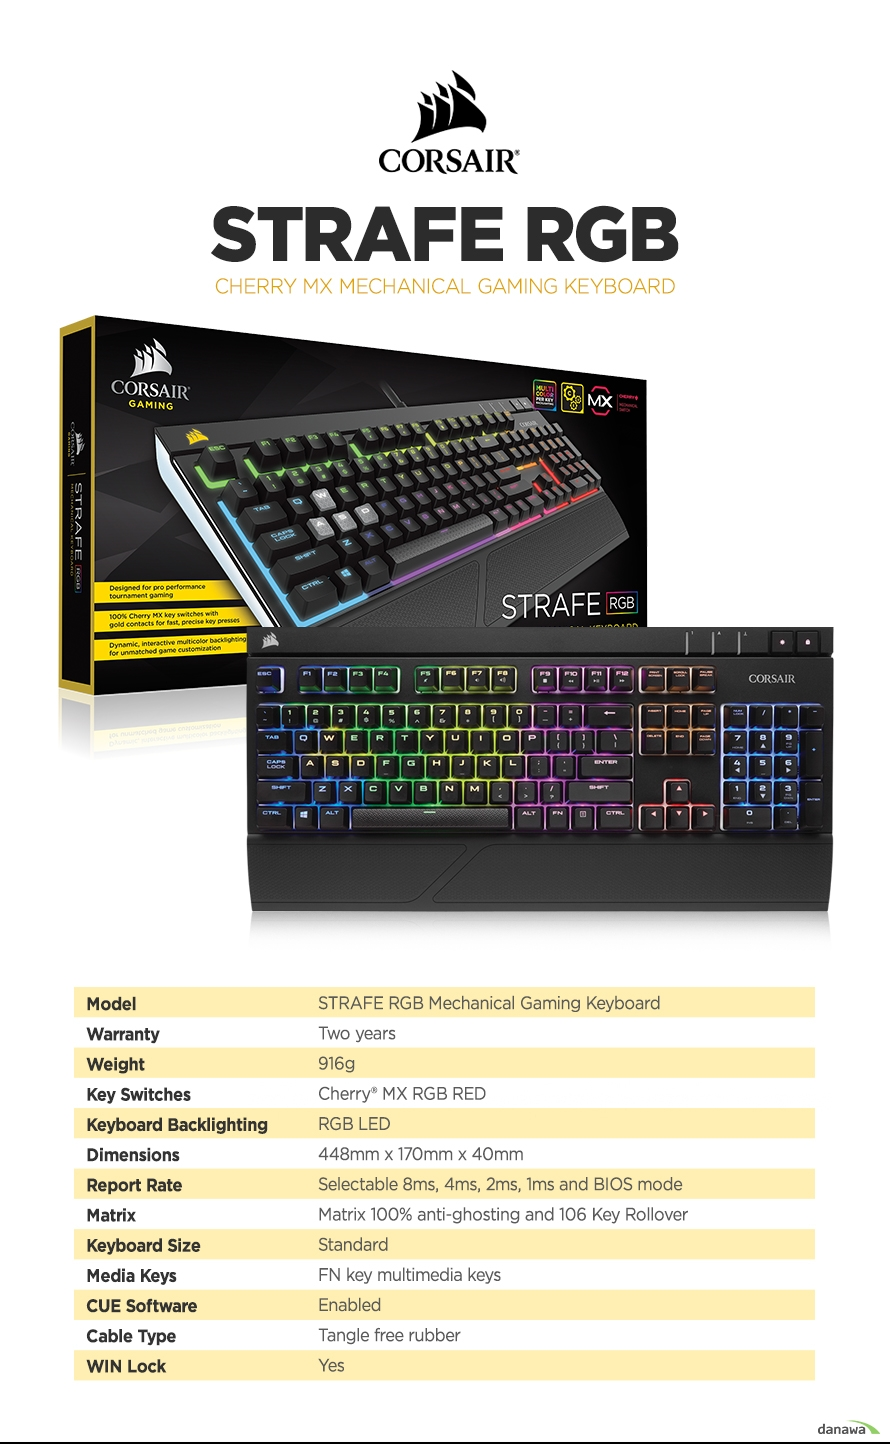 제품 사양Model	STRAFE RGB Mechanical Gaming KeyboardWarranty	Two yearsWeight	916gKey Switches	Cherry® MX RGB RedKeyboard Backlighting	RGB LEDDimensions	448mm x 170mm x 40mmReport Rate	Selectable 8ms, 4ms, 2ms, 1ms and BIOS modeMatrix	Matrix 100% anti-ghosting and 106 Key RolloverKeyboard Size	StandardMedia Keys	FN key multimedia keysCUE Software	EnabledCable Type	Tangle free rubberWIN Lock	Yes